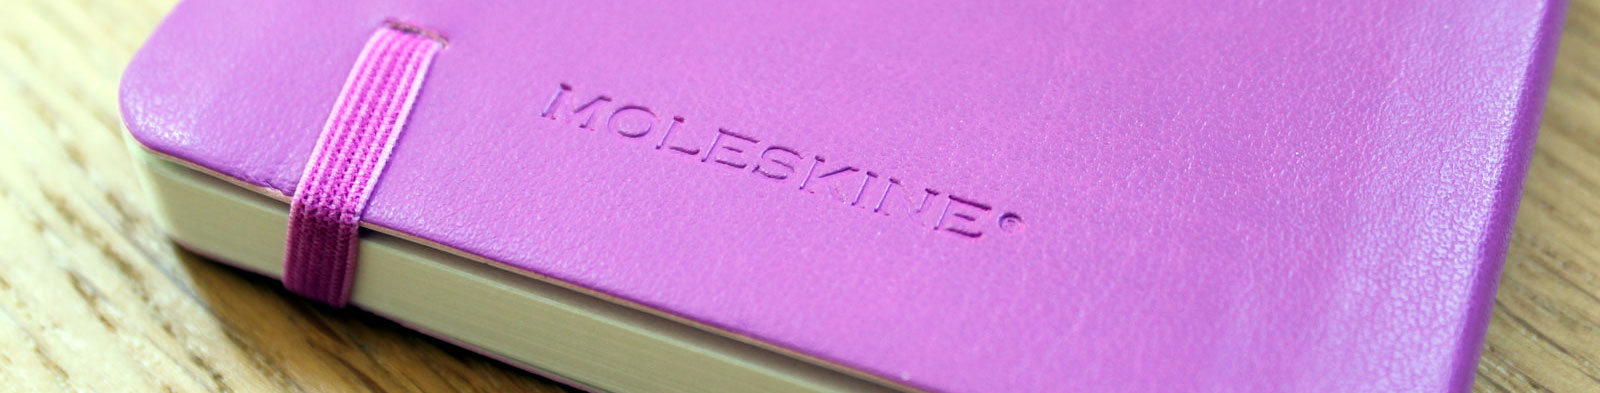 Moleskine soft cover pocket notebook (orchid purple) back cover